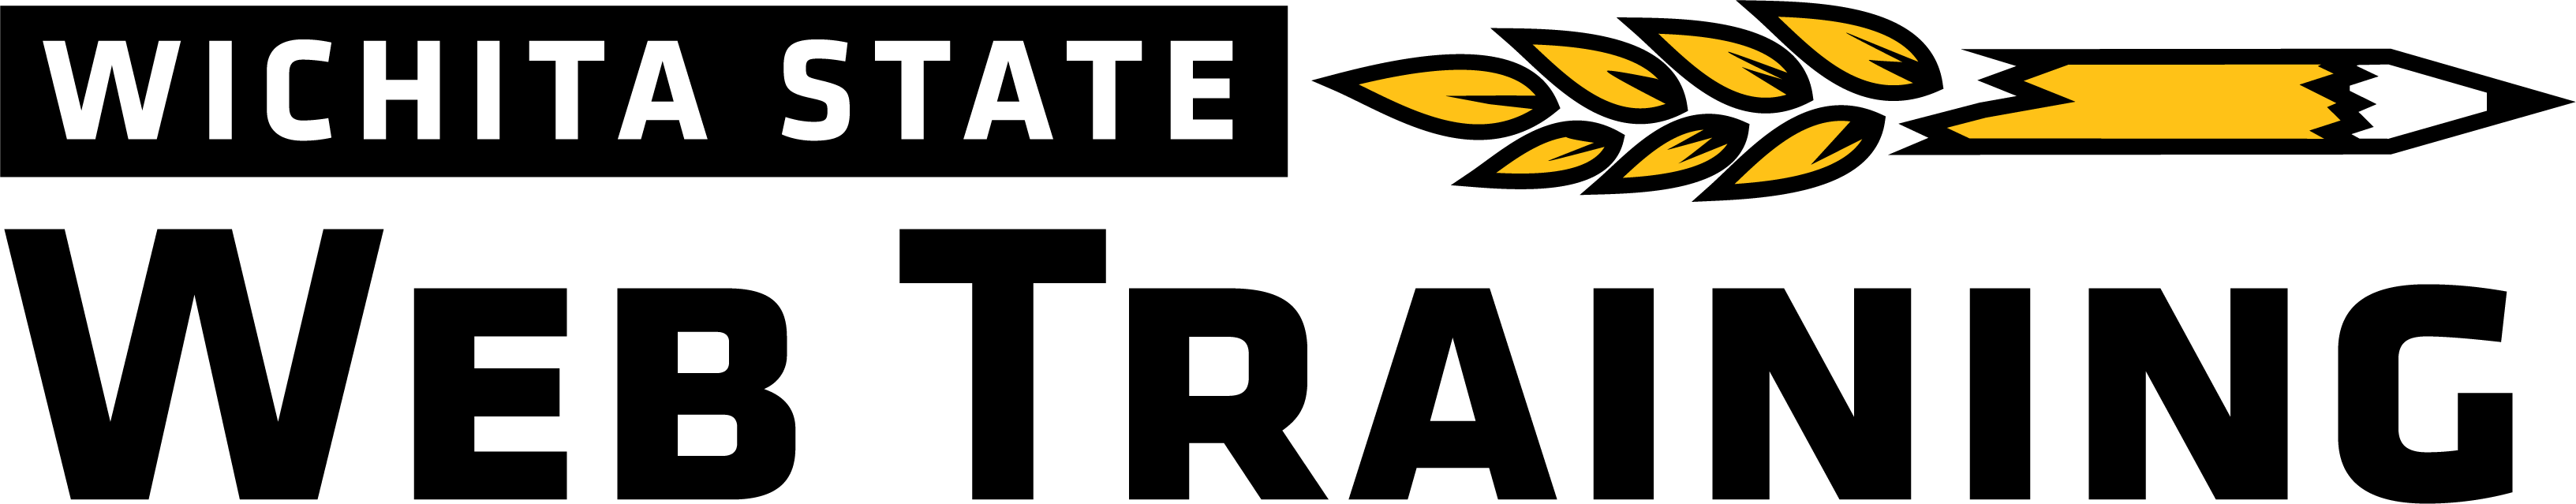 Wichita State Web Training Logo